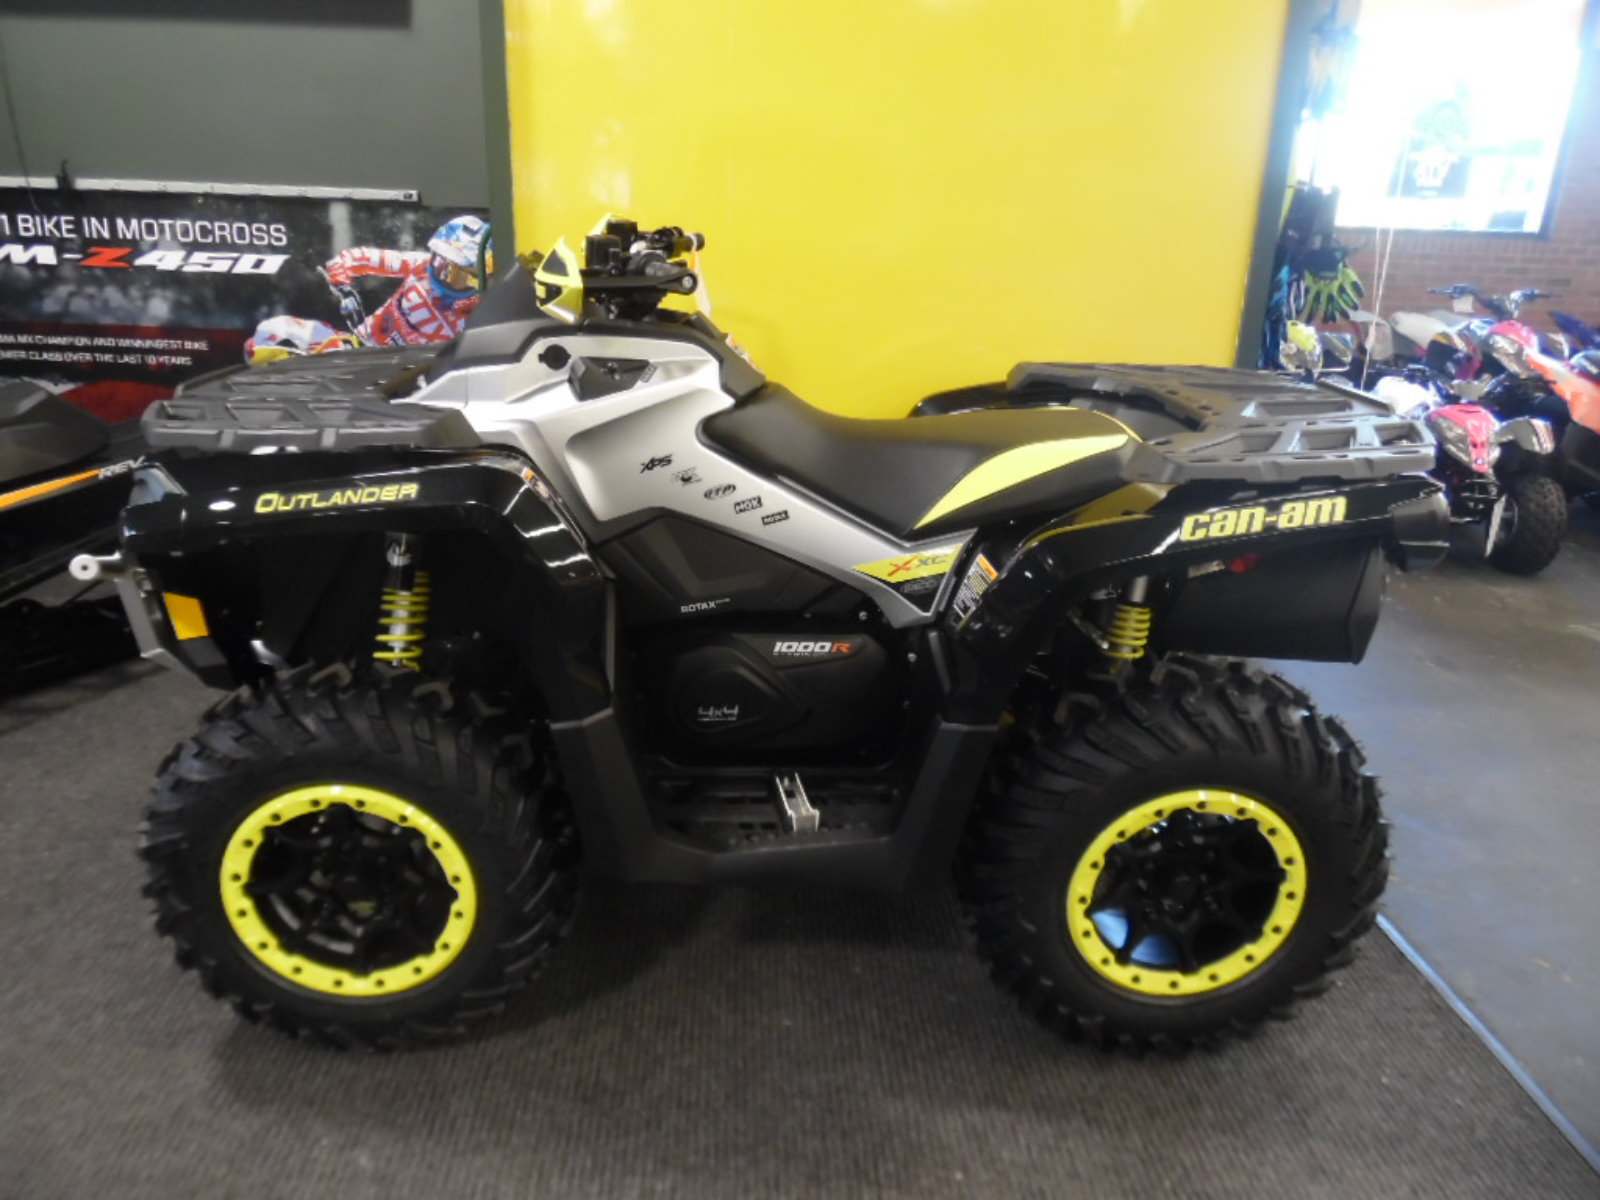 Inventory from Can Am Filer s Powersports LLC Macedon NY 1 877 999 7777